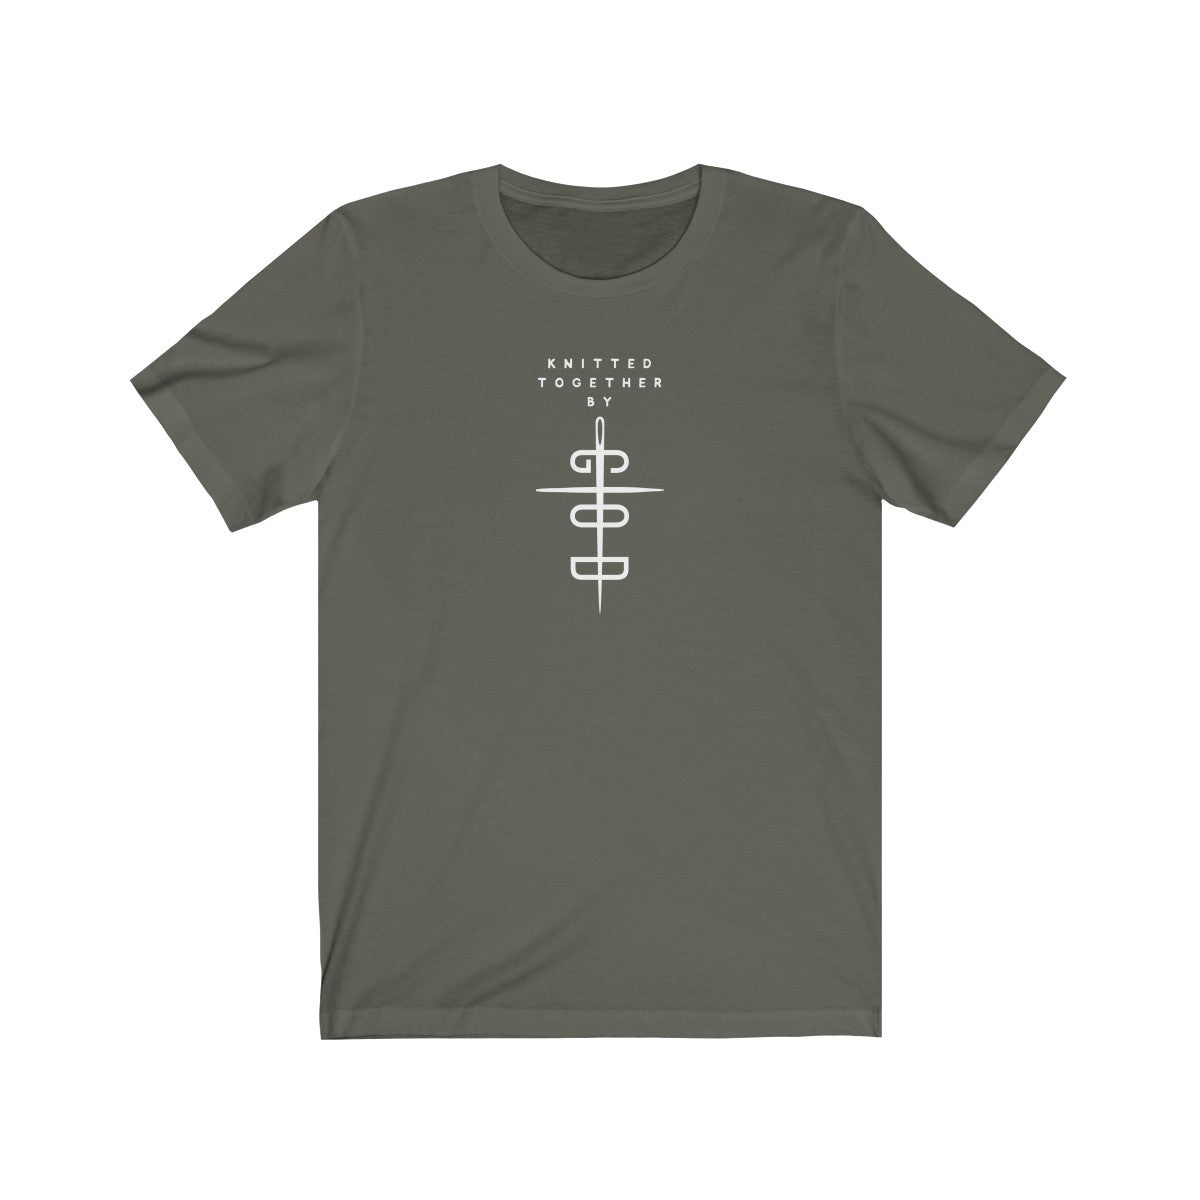 Knitted Together By God Unisex Jersey Short Sleeve Tee - Dark Colors